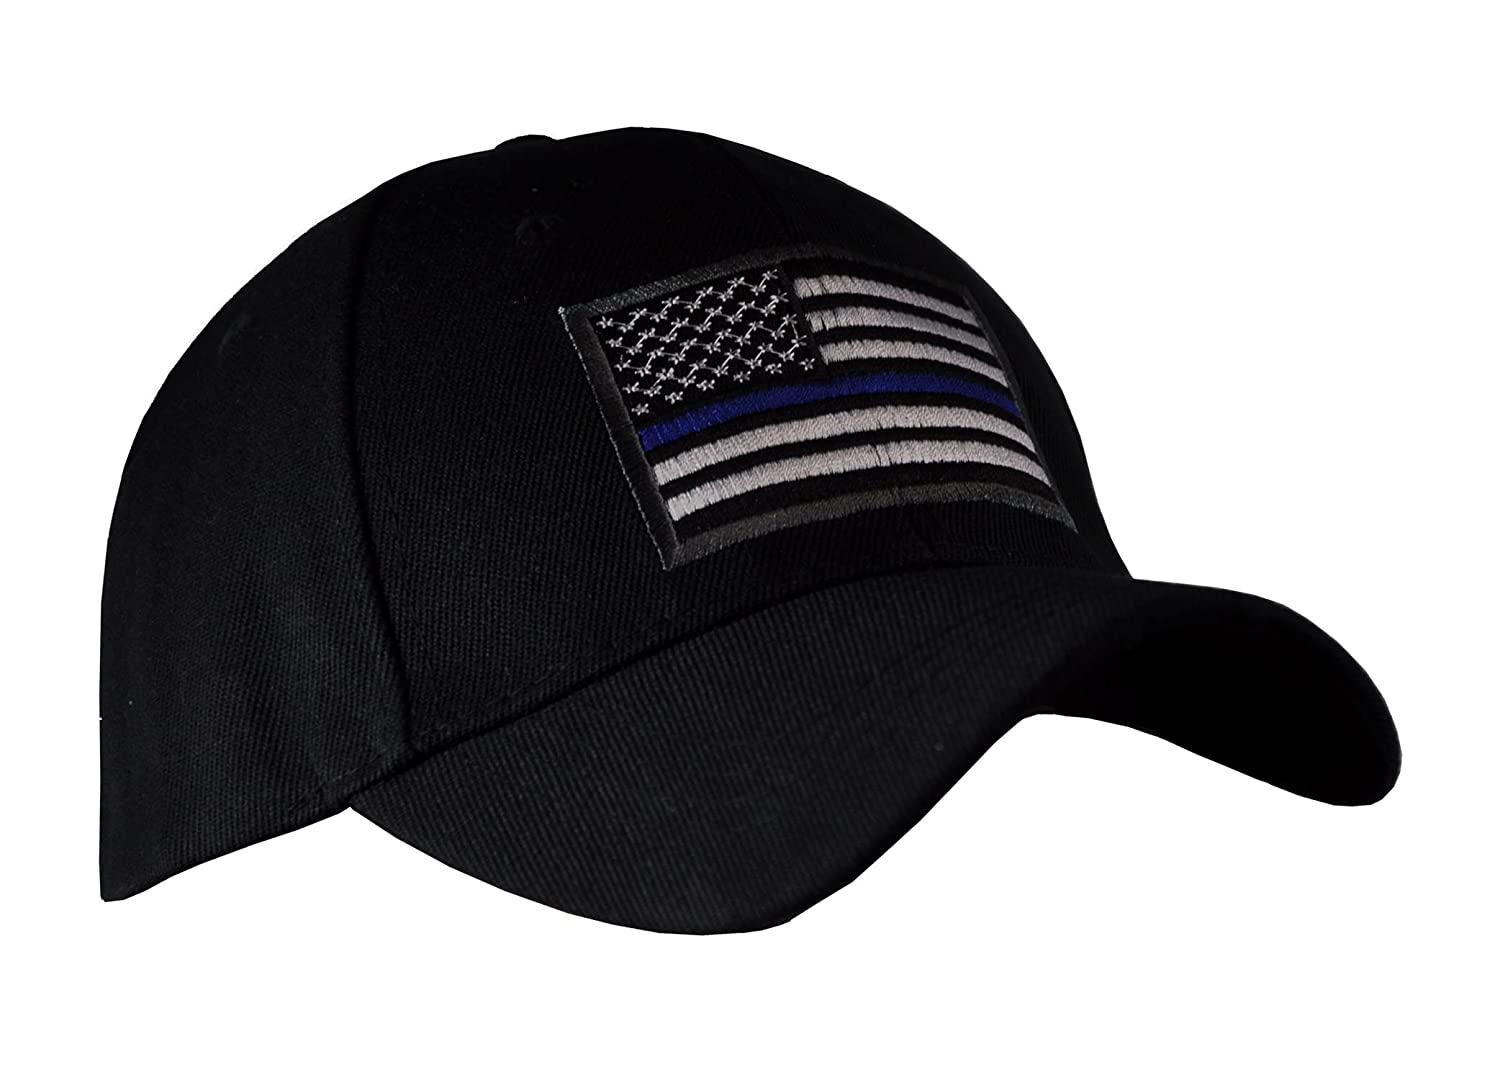 3cef3c199f8b7 Amazon.com   US Army American Flag Embroidered Operator Military Baseball  Hat Cap (Black)   Sports   Outdoors